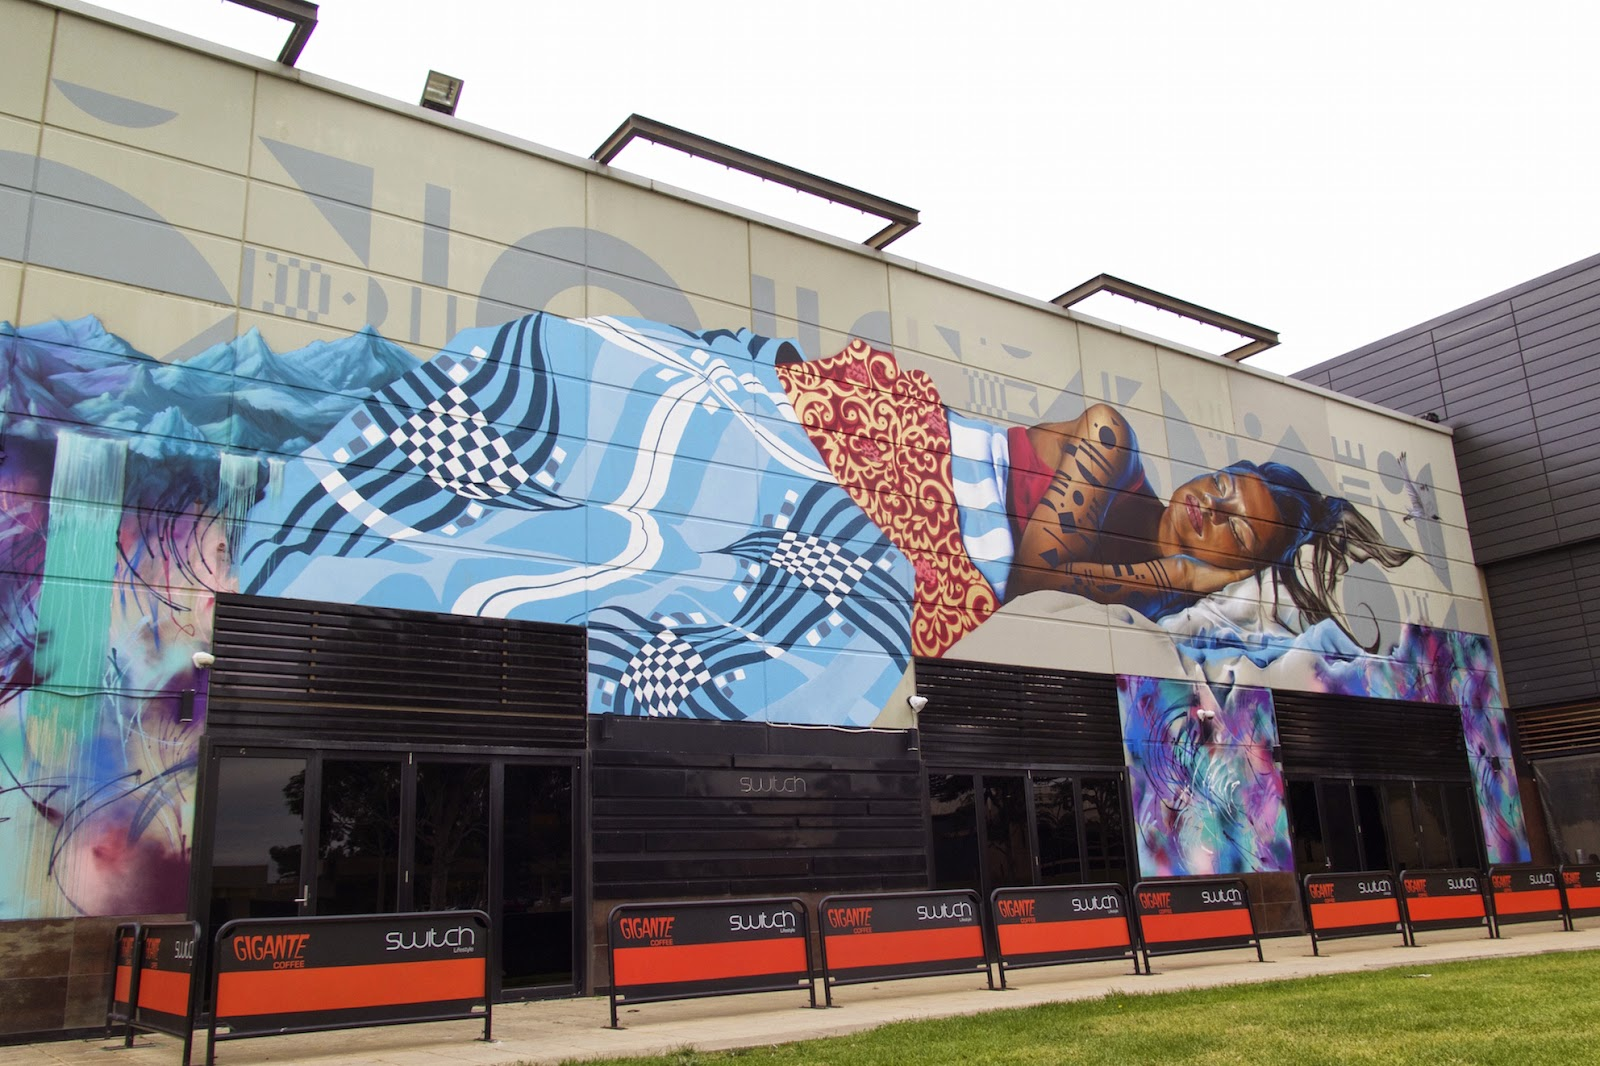 AWOL Crew recently spent four days painting the entire side of a large building at Fountain Gate in Melbourne's outer suburbs. The crew consists of Adnate, Slicer, Lucy Lucy, Deams and Itch all of which have their own diverse painting styles making their large scale murals unique.